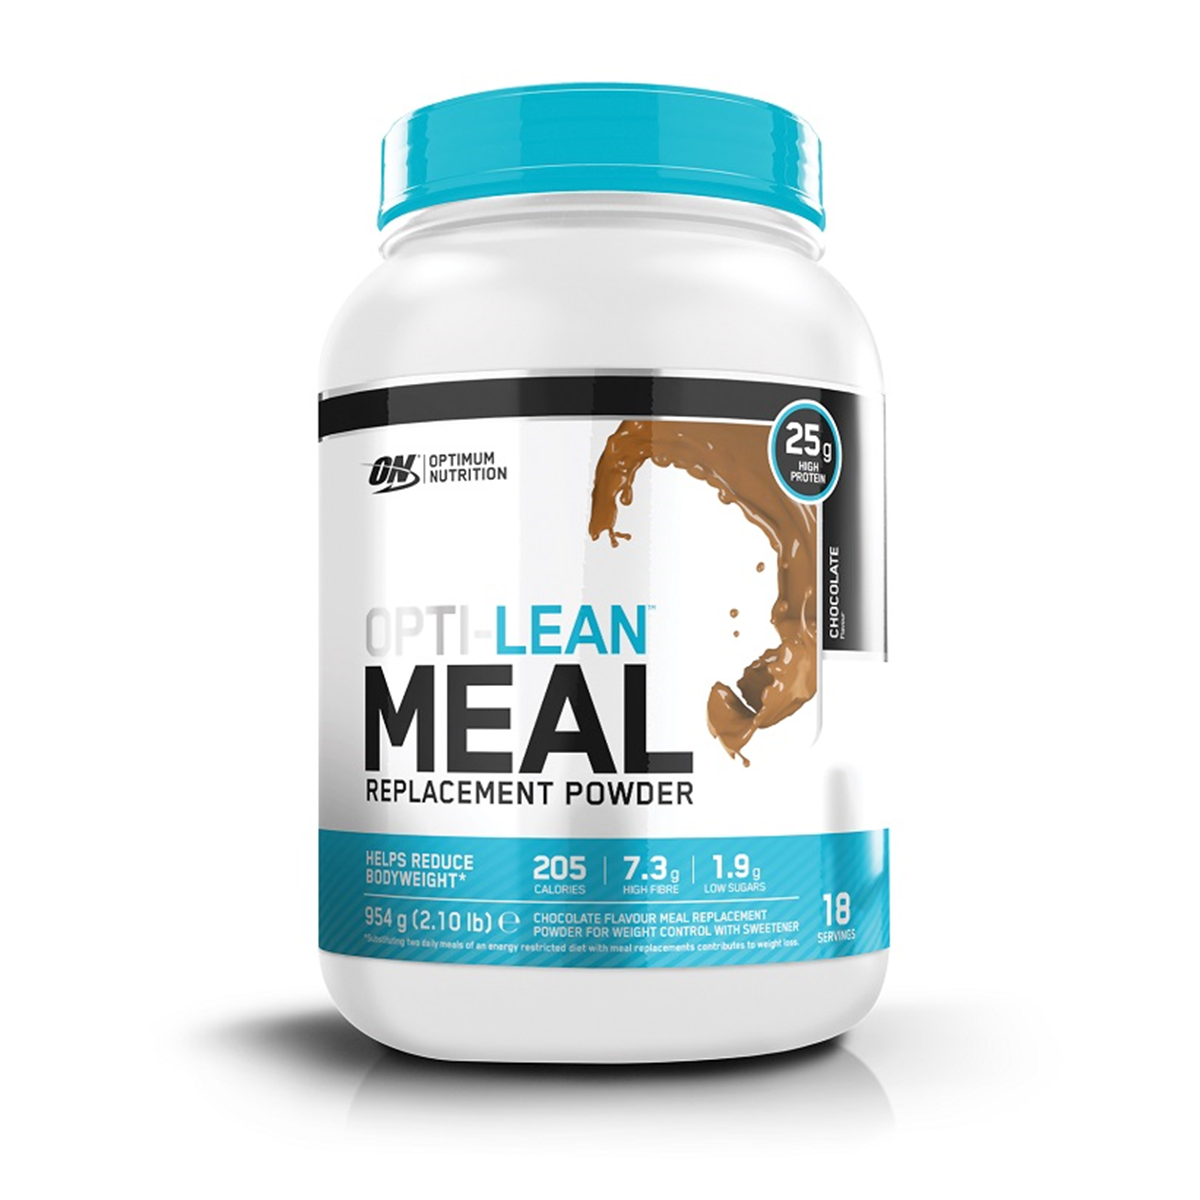 Opti-Lean Meal Replacement Powder Review